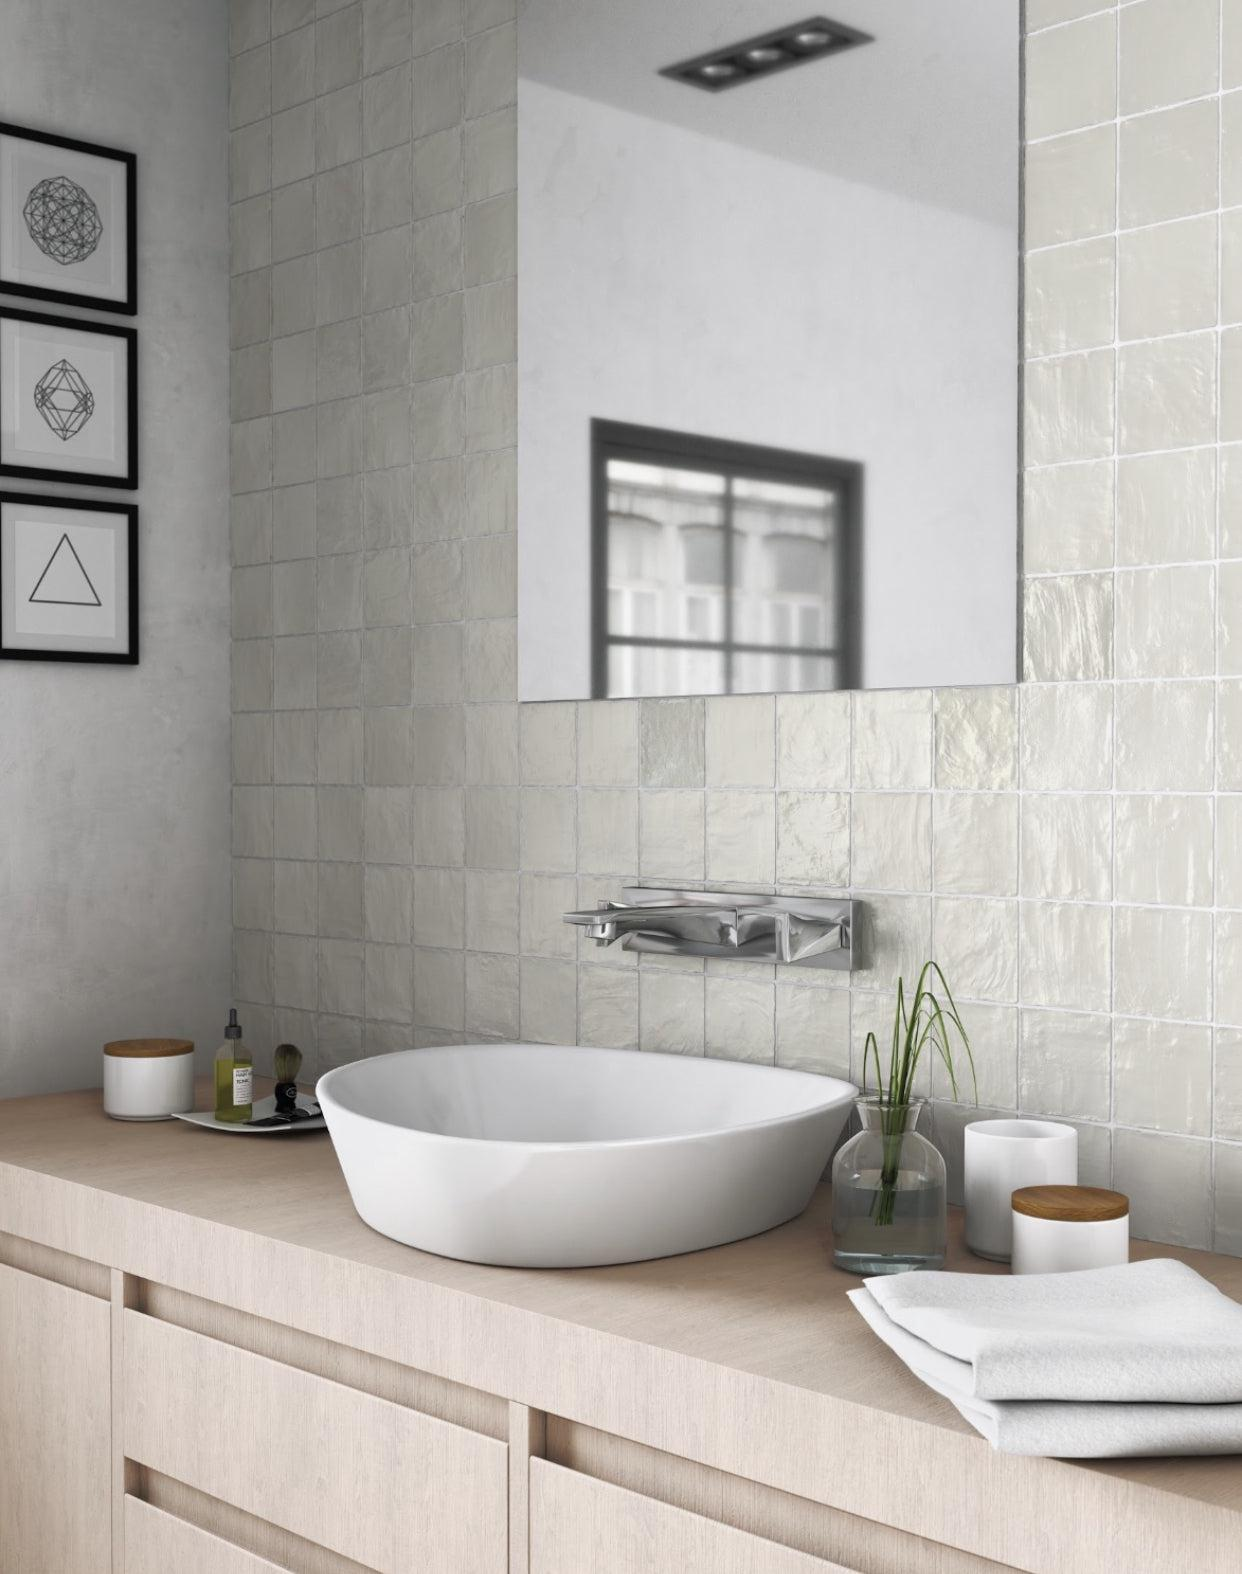 Bathroom Remodeling Ideas with Green Ceramic Artisan Tiles for a Minimalist Vanity